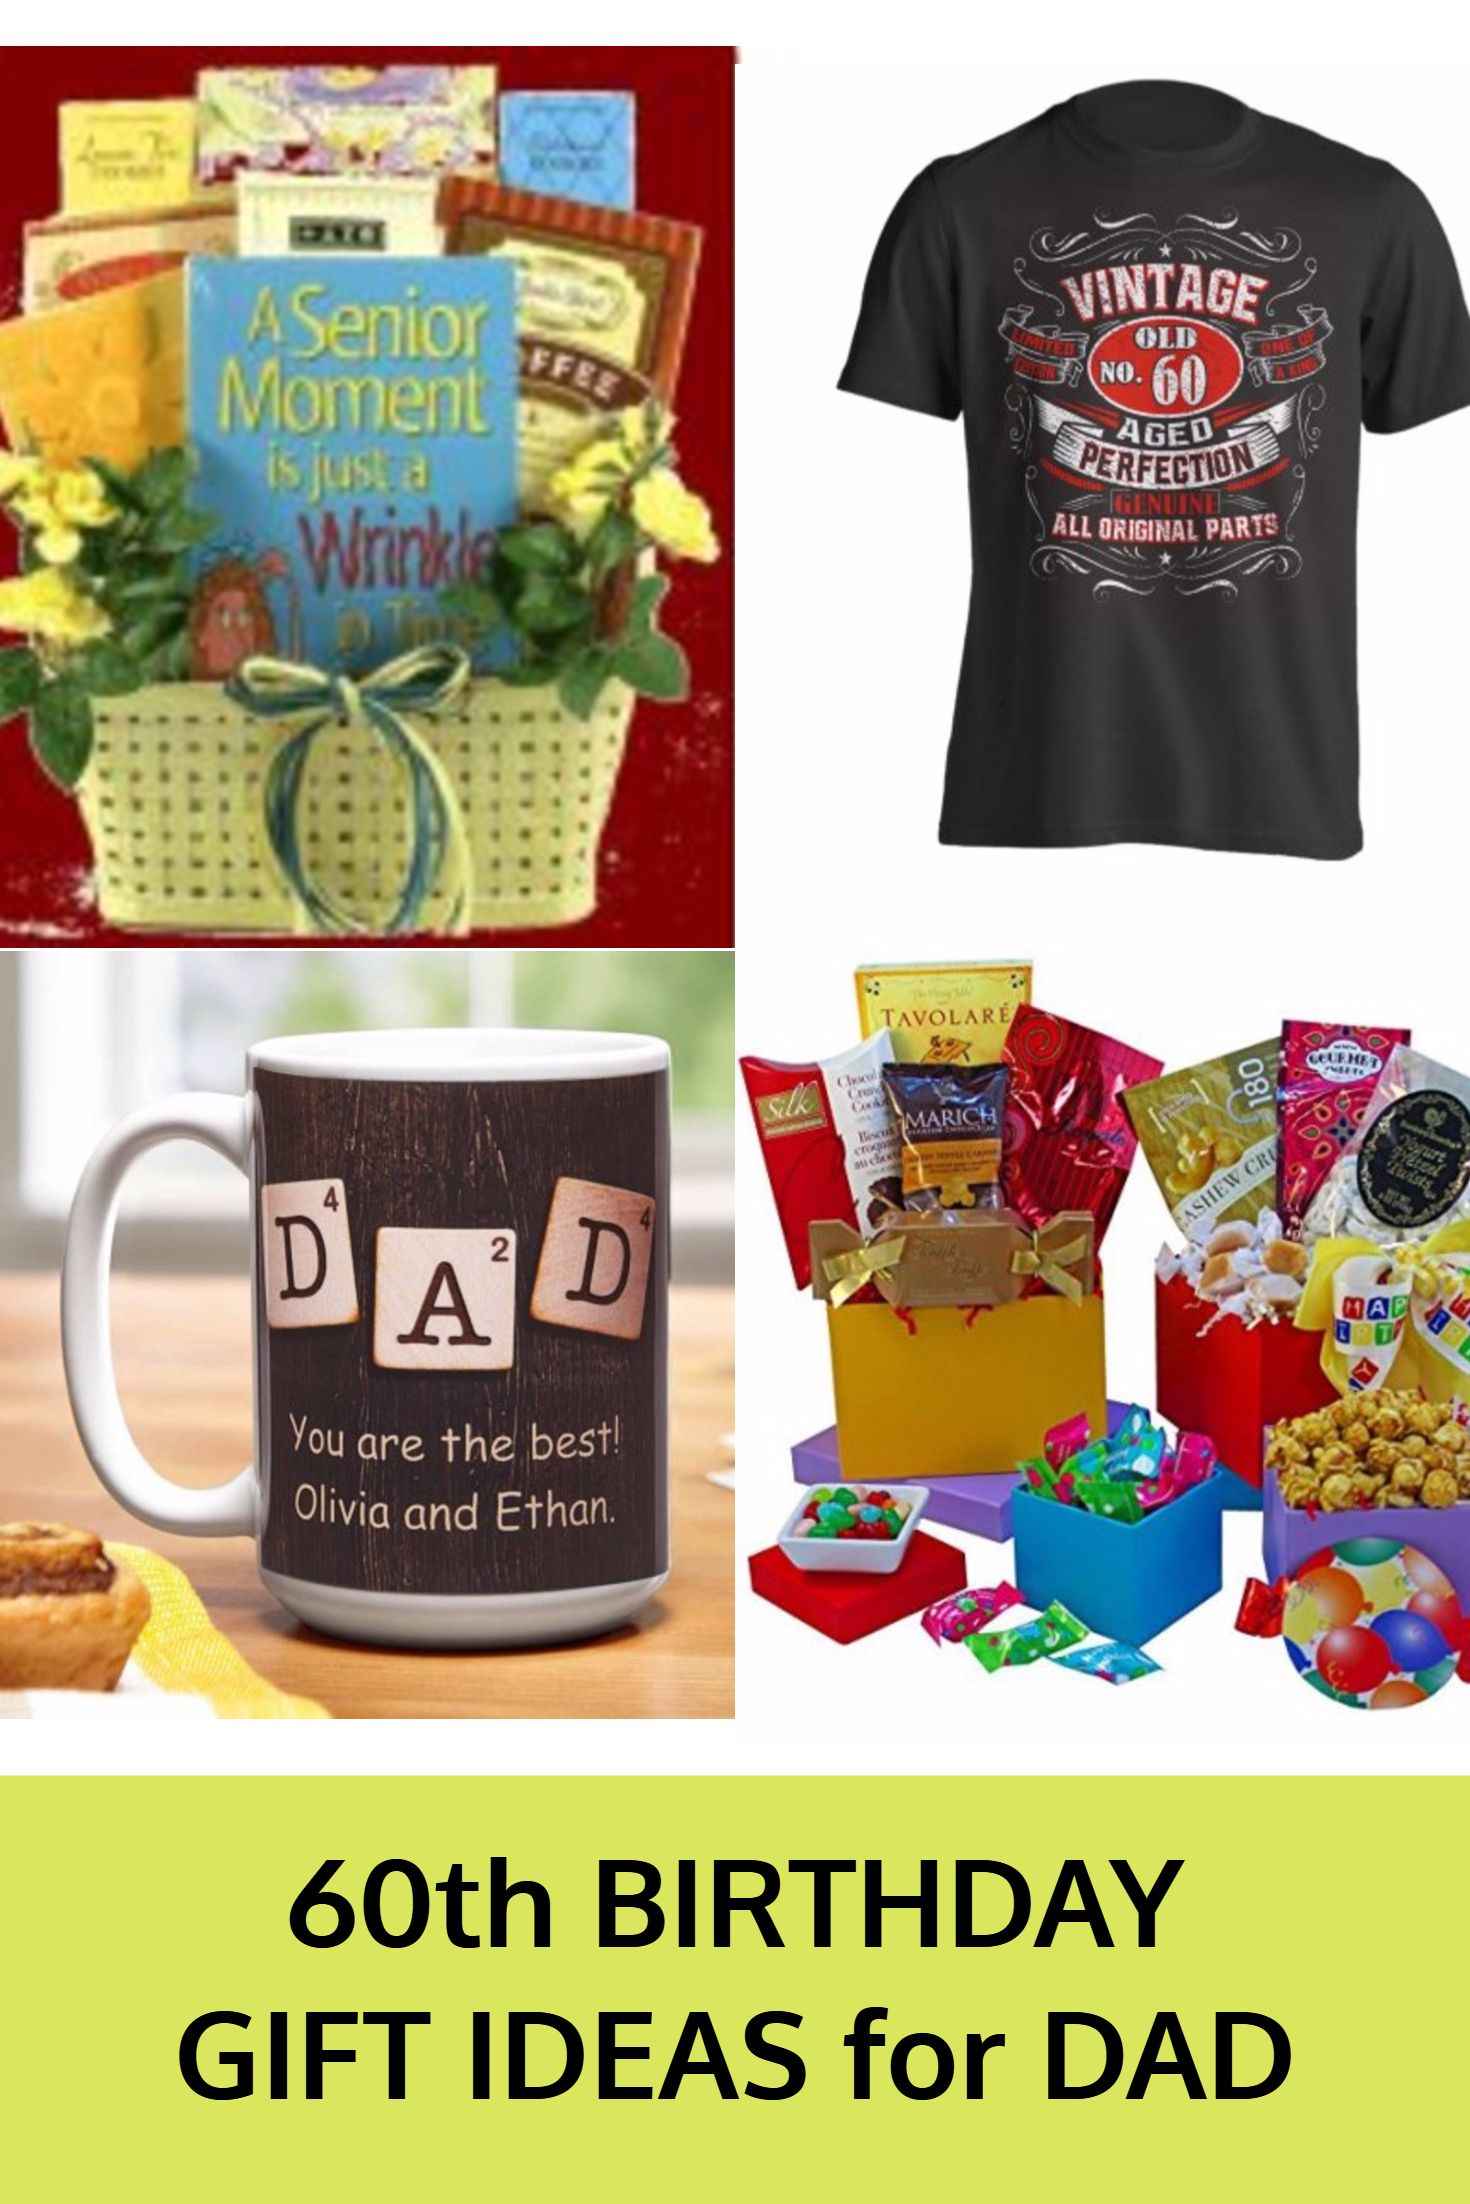 60th Birthday Gifts for Dad. Great gift ideas to help celebrate Dad's 60th. Gift Ideas for a Dad that loves Golf, fishing or other hobbies.